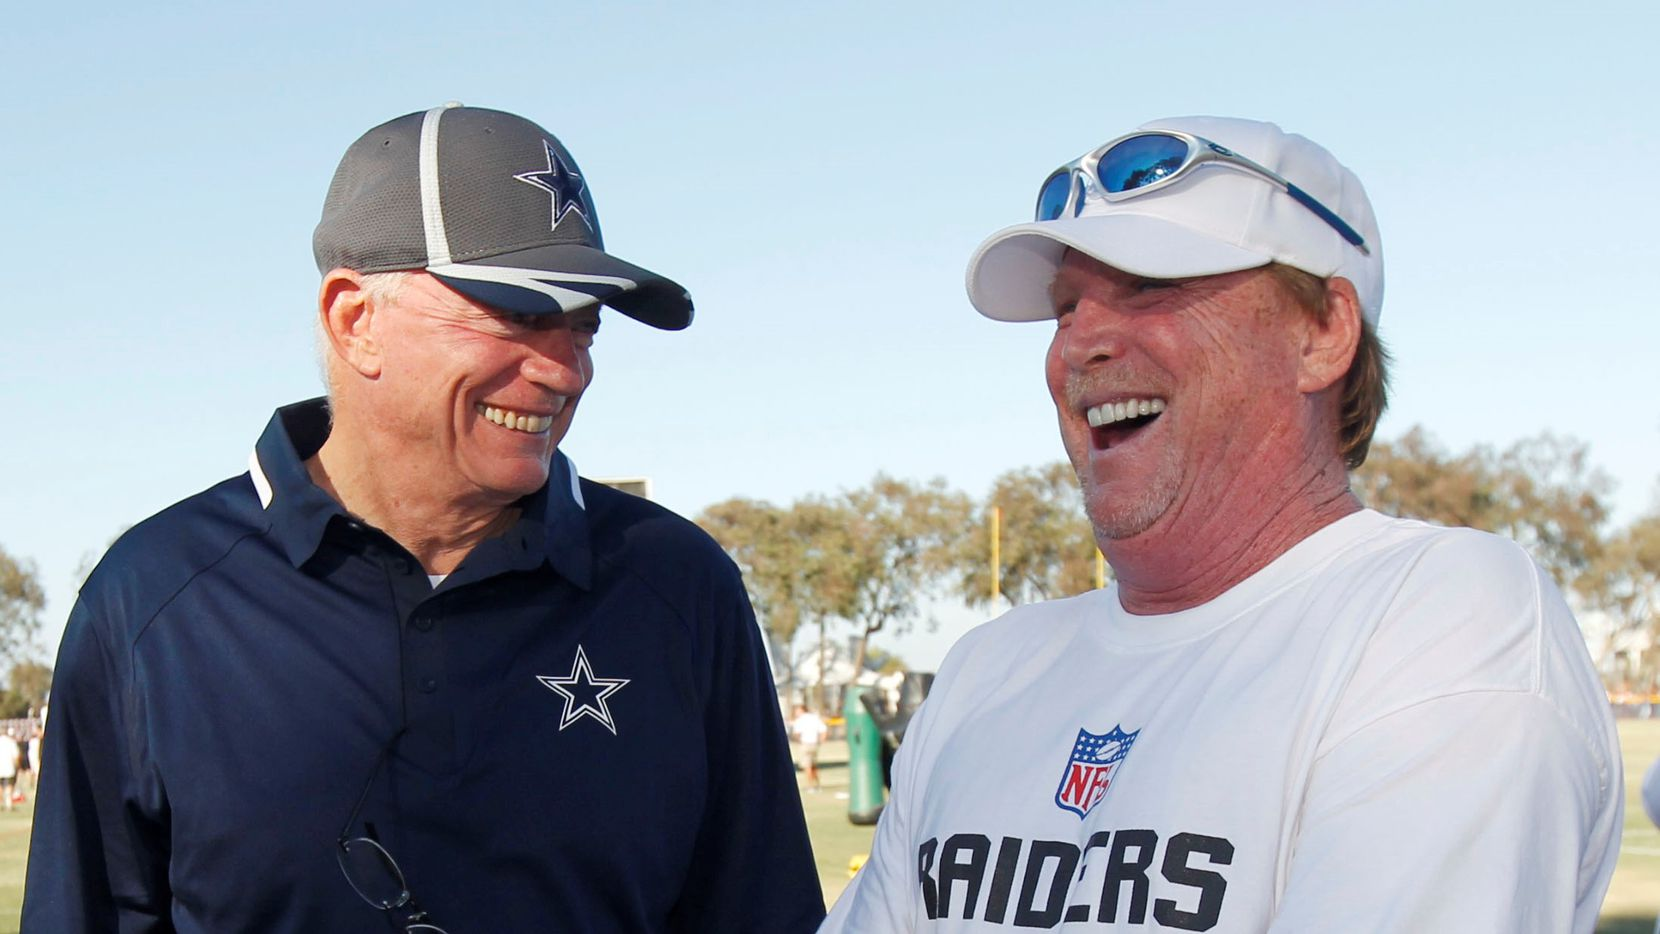 Dallas Cowboys owner Jerry Jones greets Oakland Raider owner Mark Davis (right) during their afternoon practice in Oxnard, CA, on Aug 12, 2014.  (Michael Ainsworth/The Dallas Morning News)